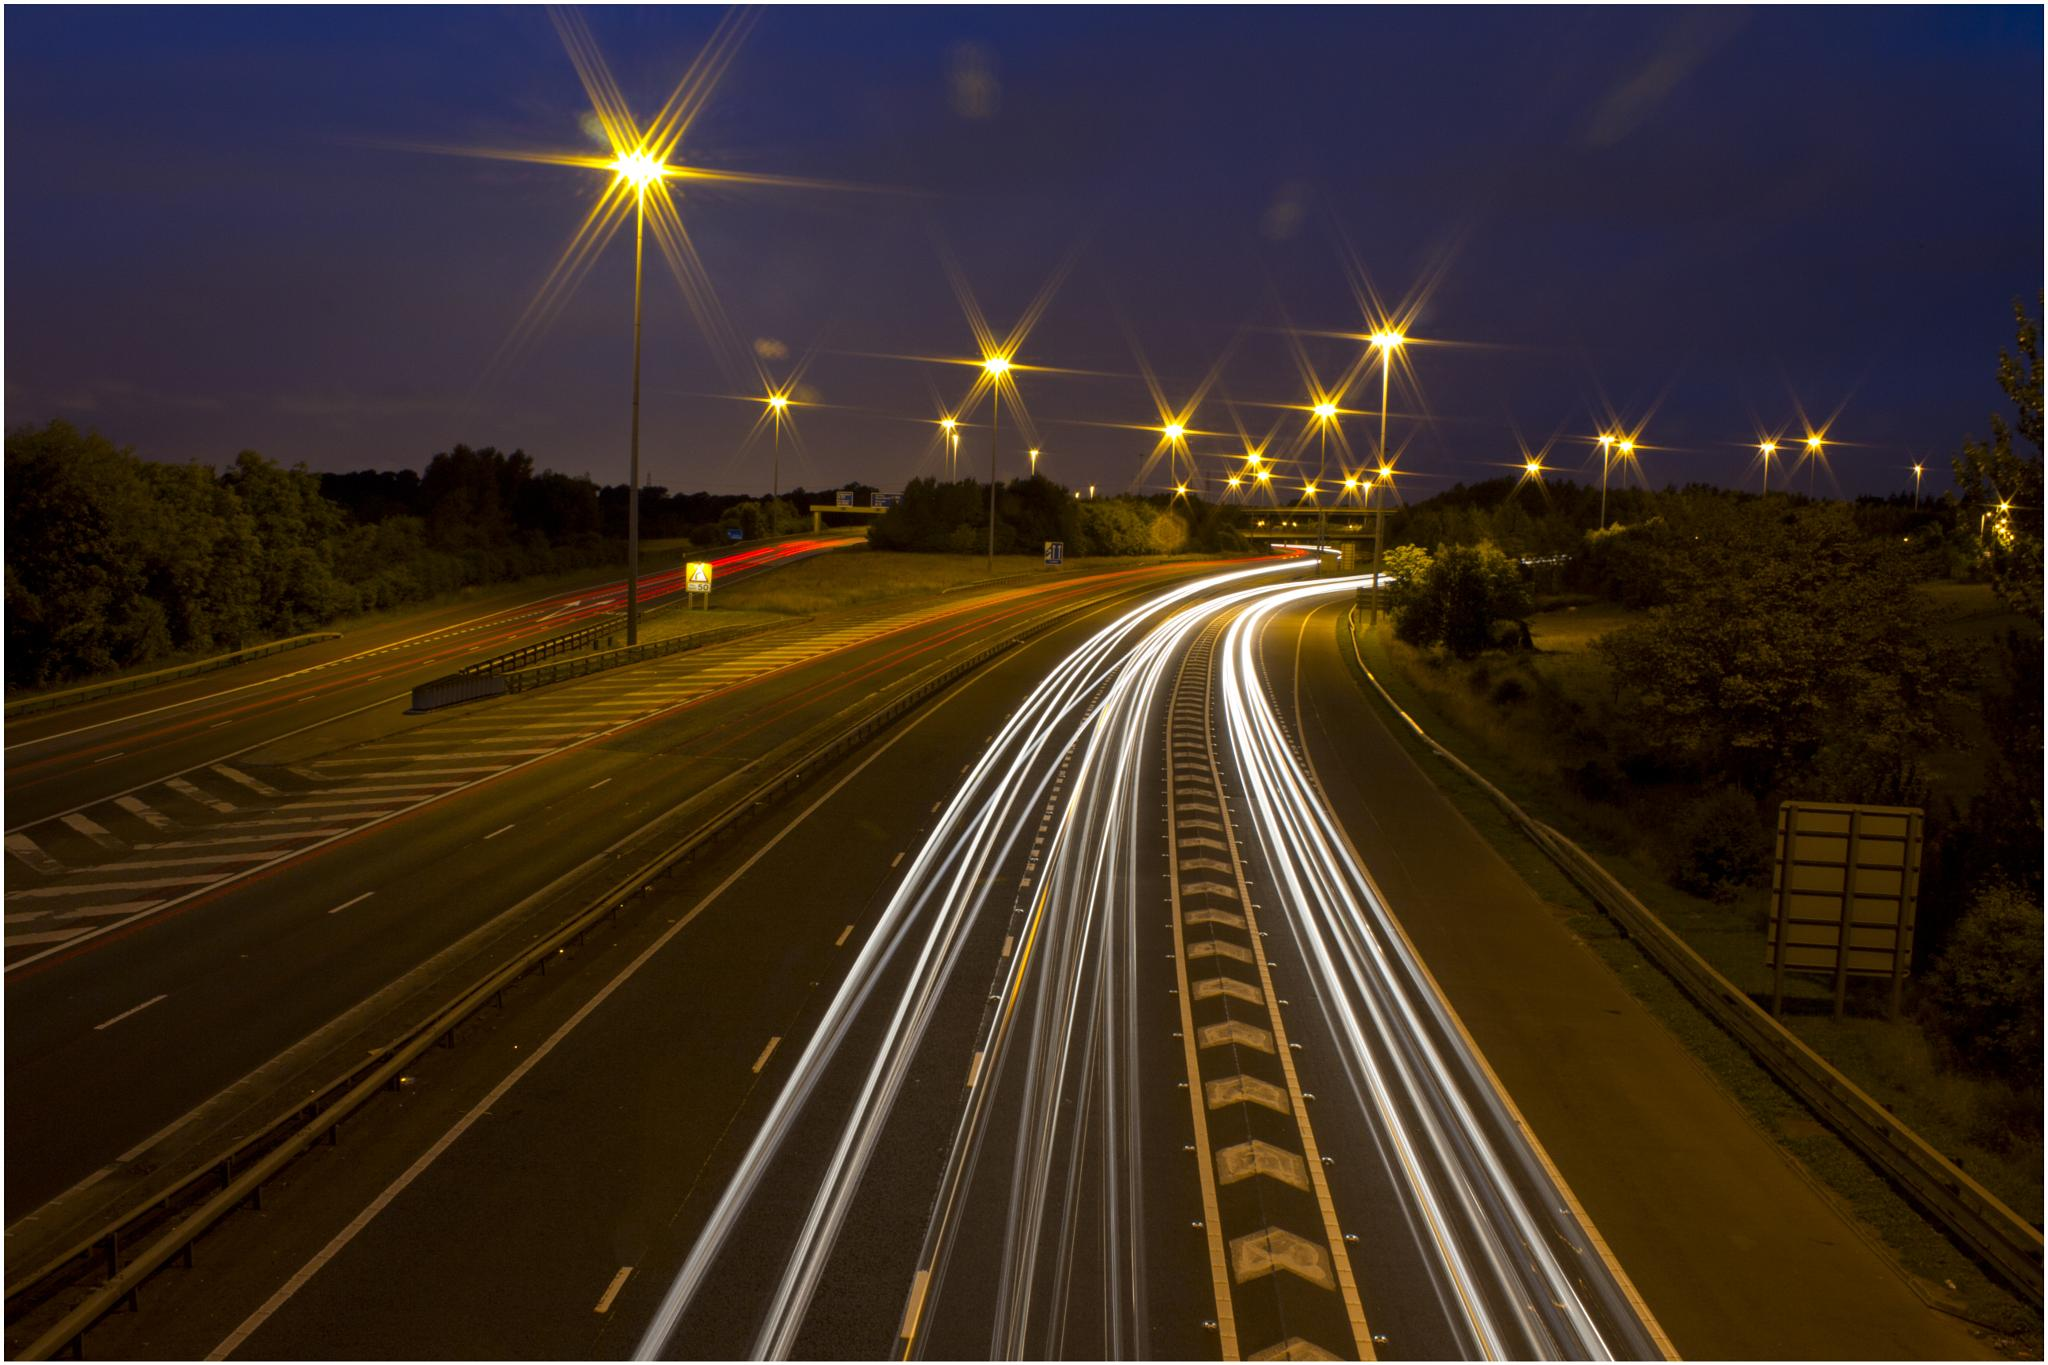 Light Trails by Colin